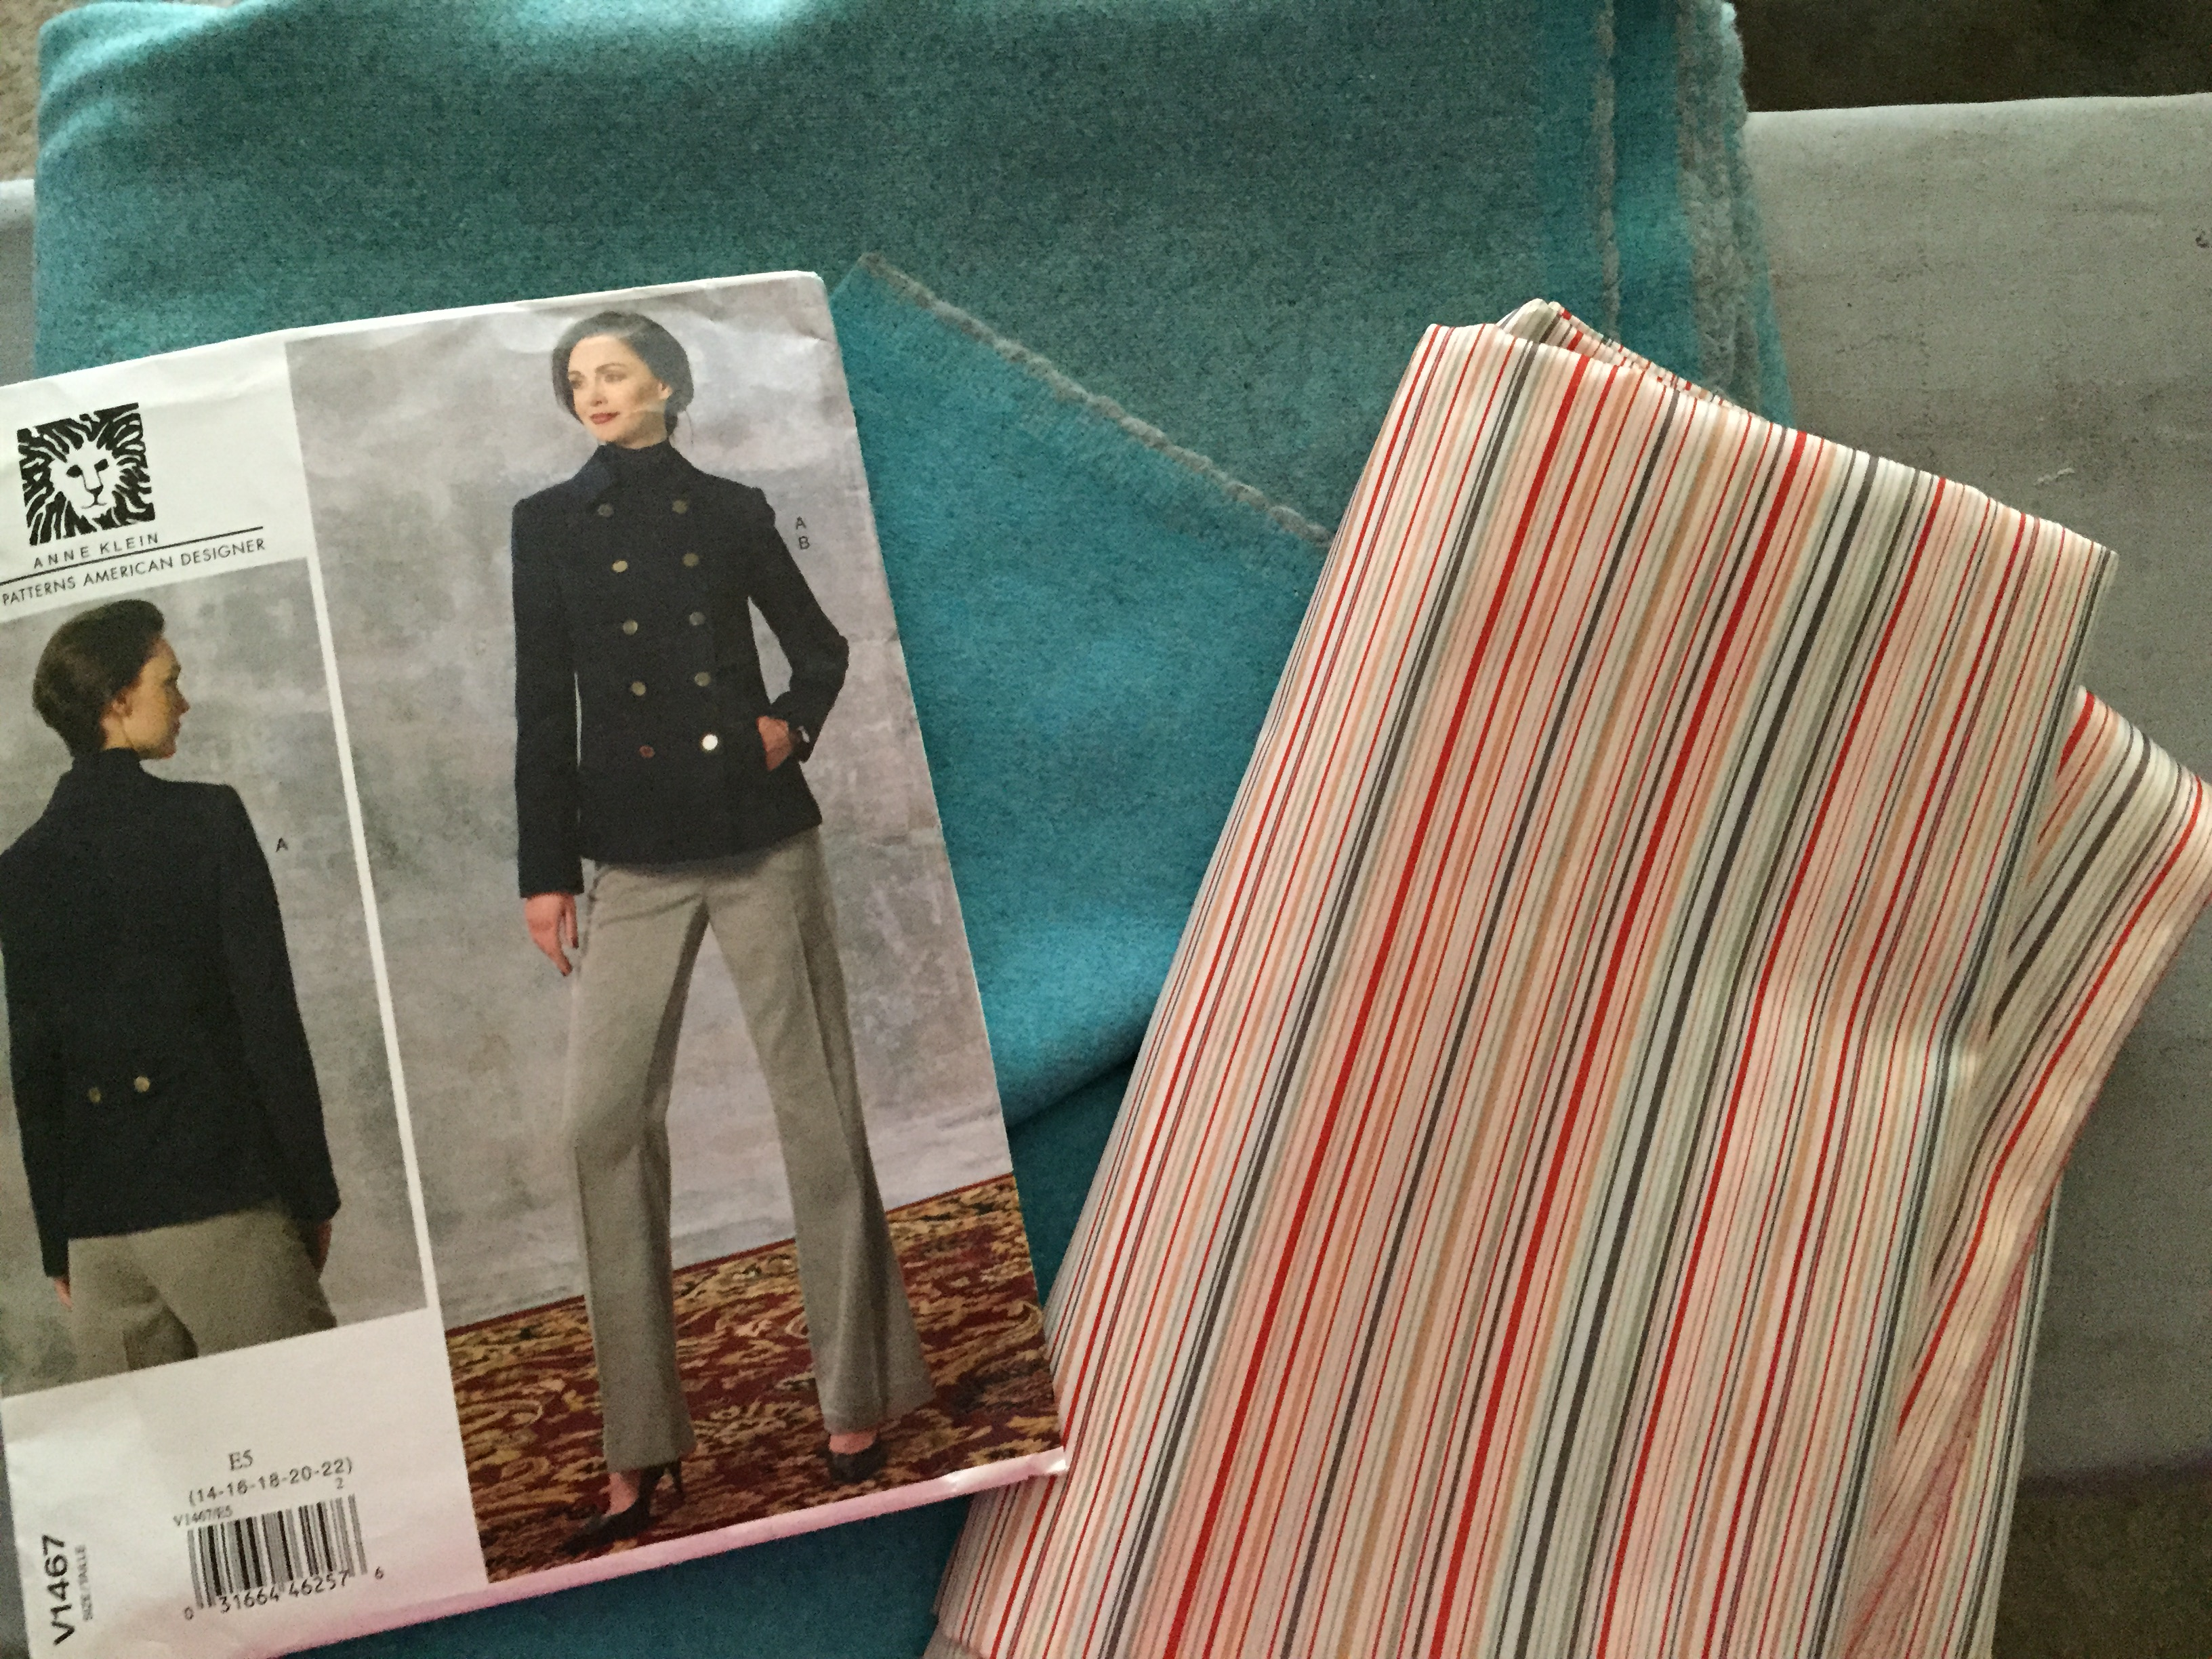 Vogue 1467 Pea Coat Sew Along Sew Along